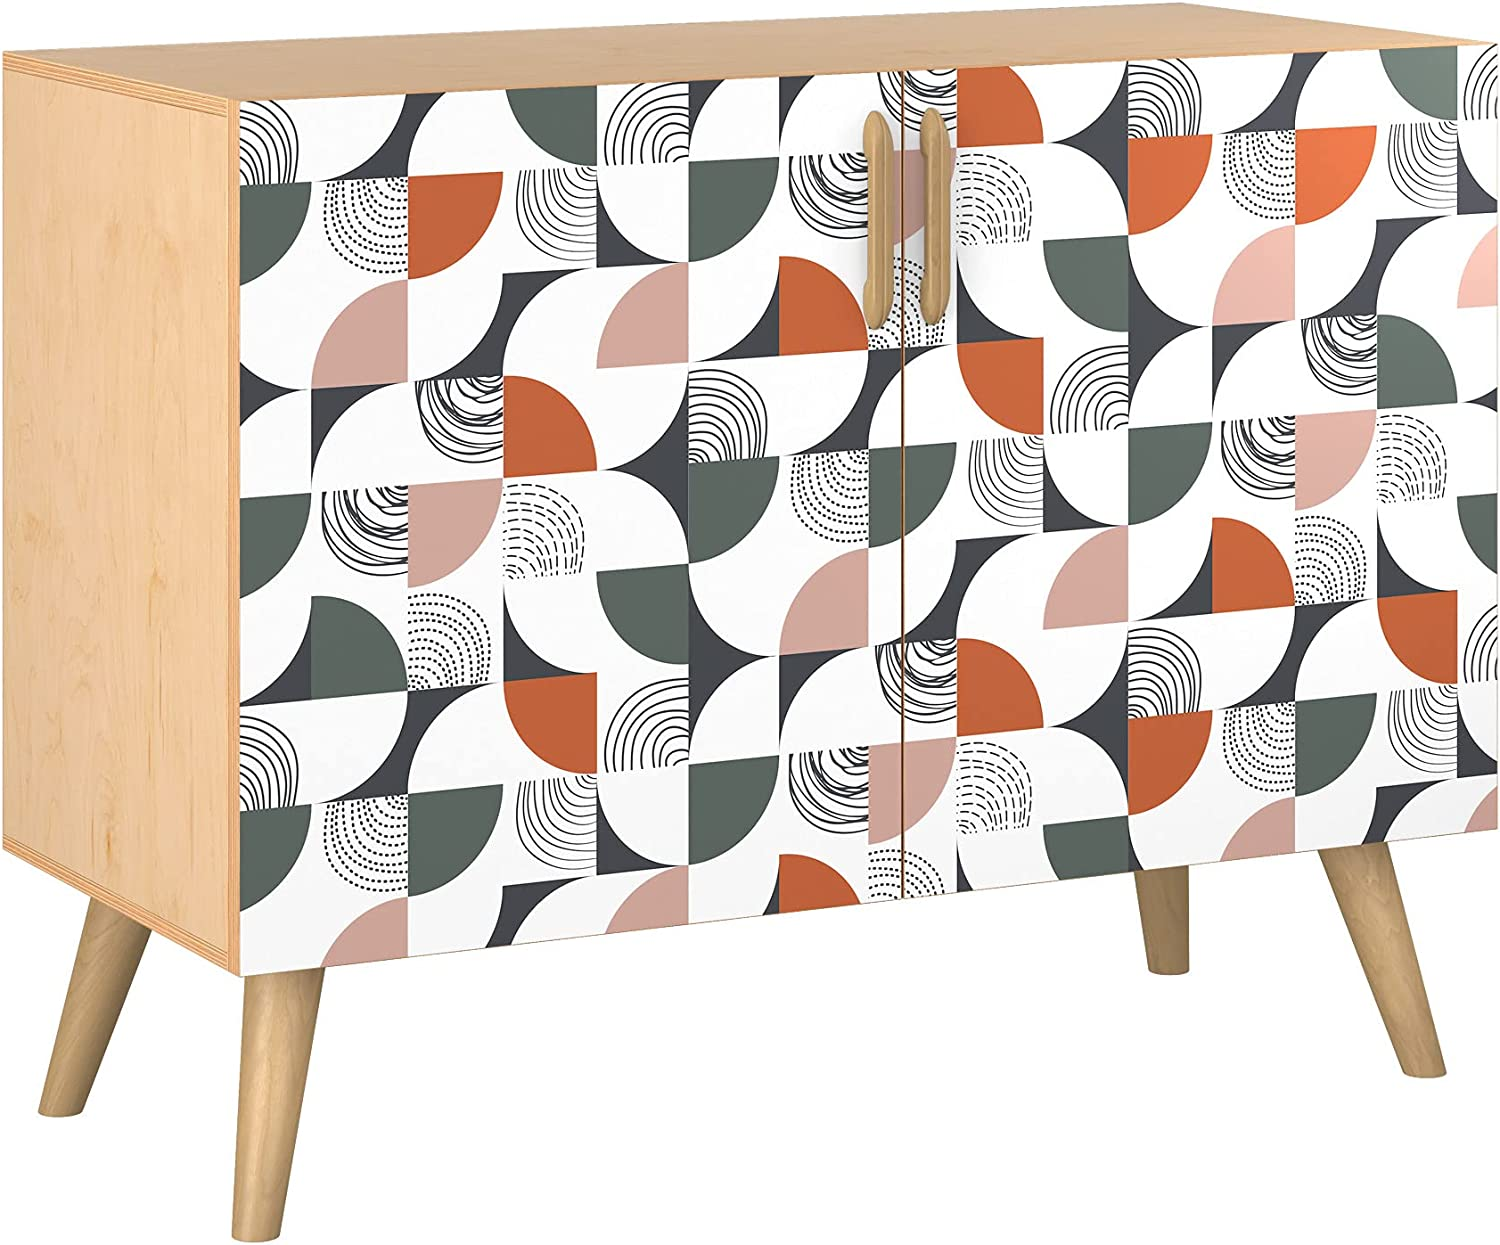 Poppy Credenza - Natural Sadie shopping Design Styl in 5 Base Colors Max 66% OFF 11